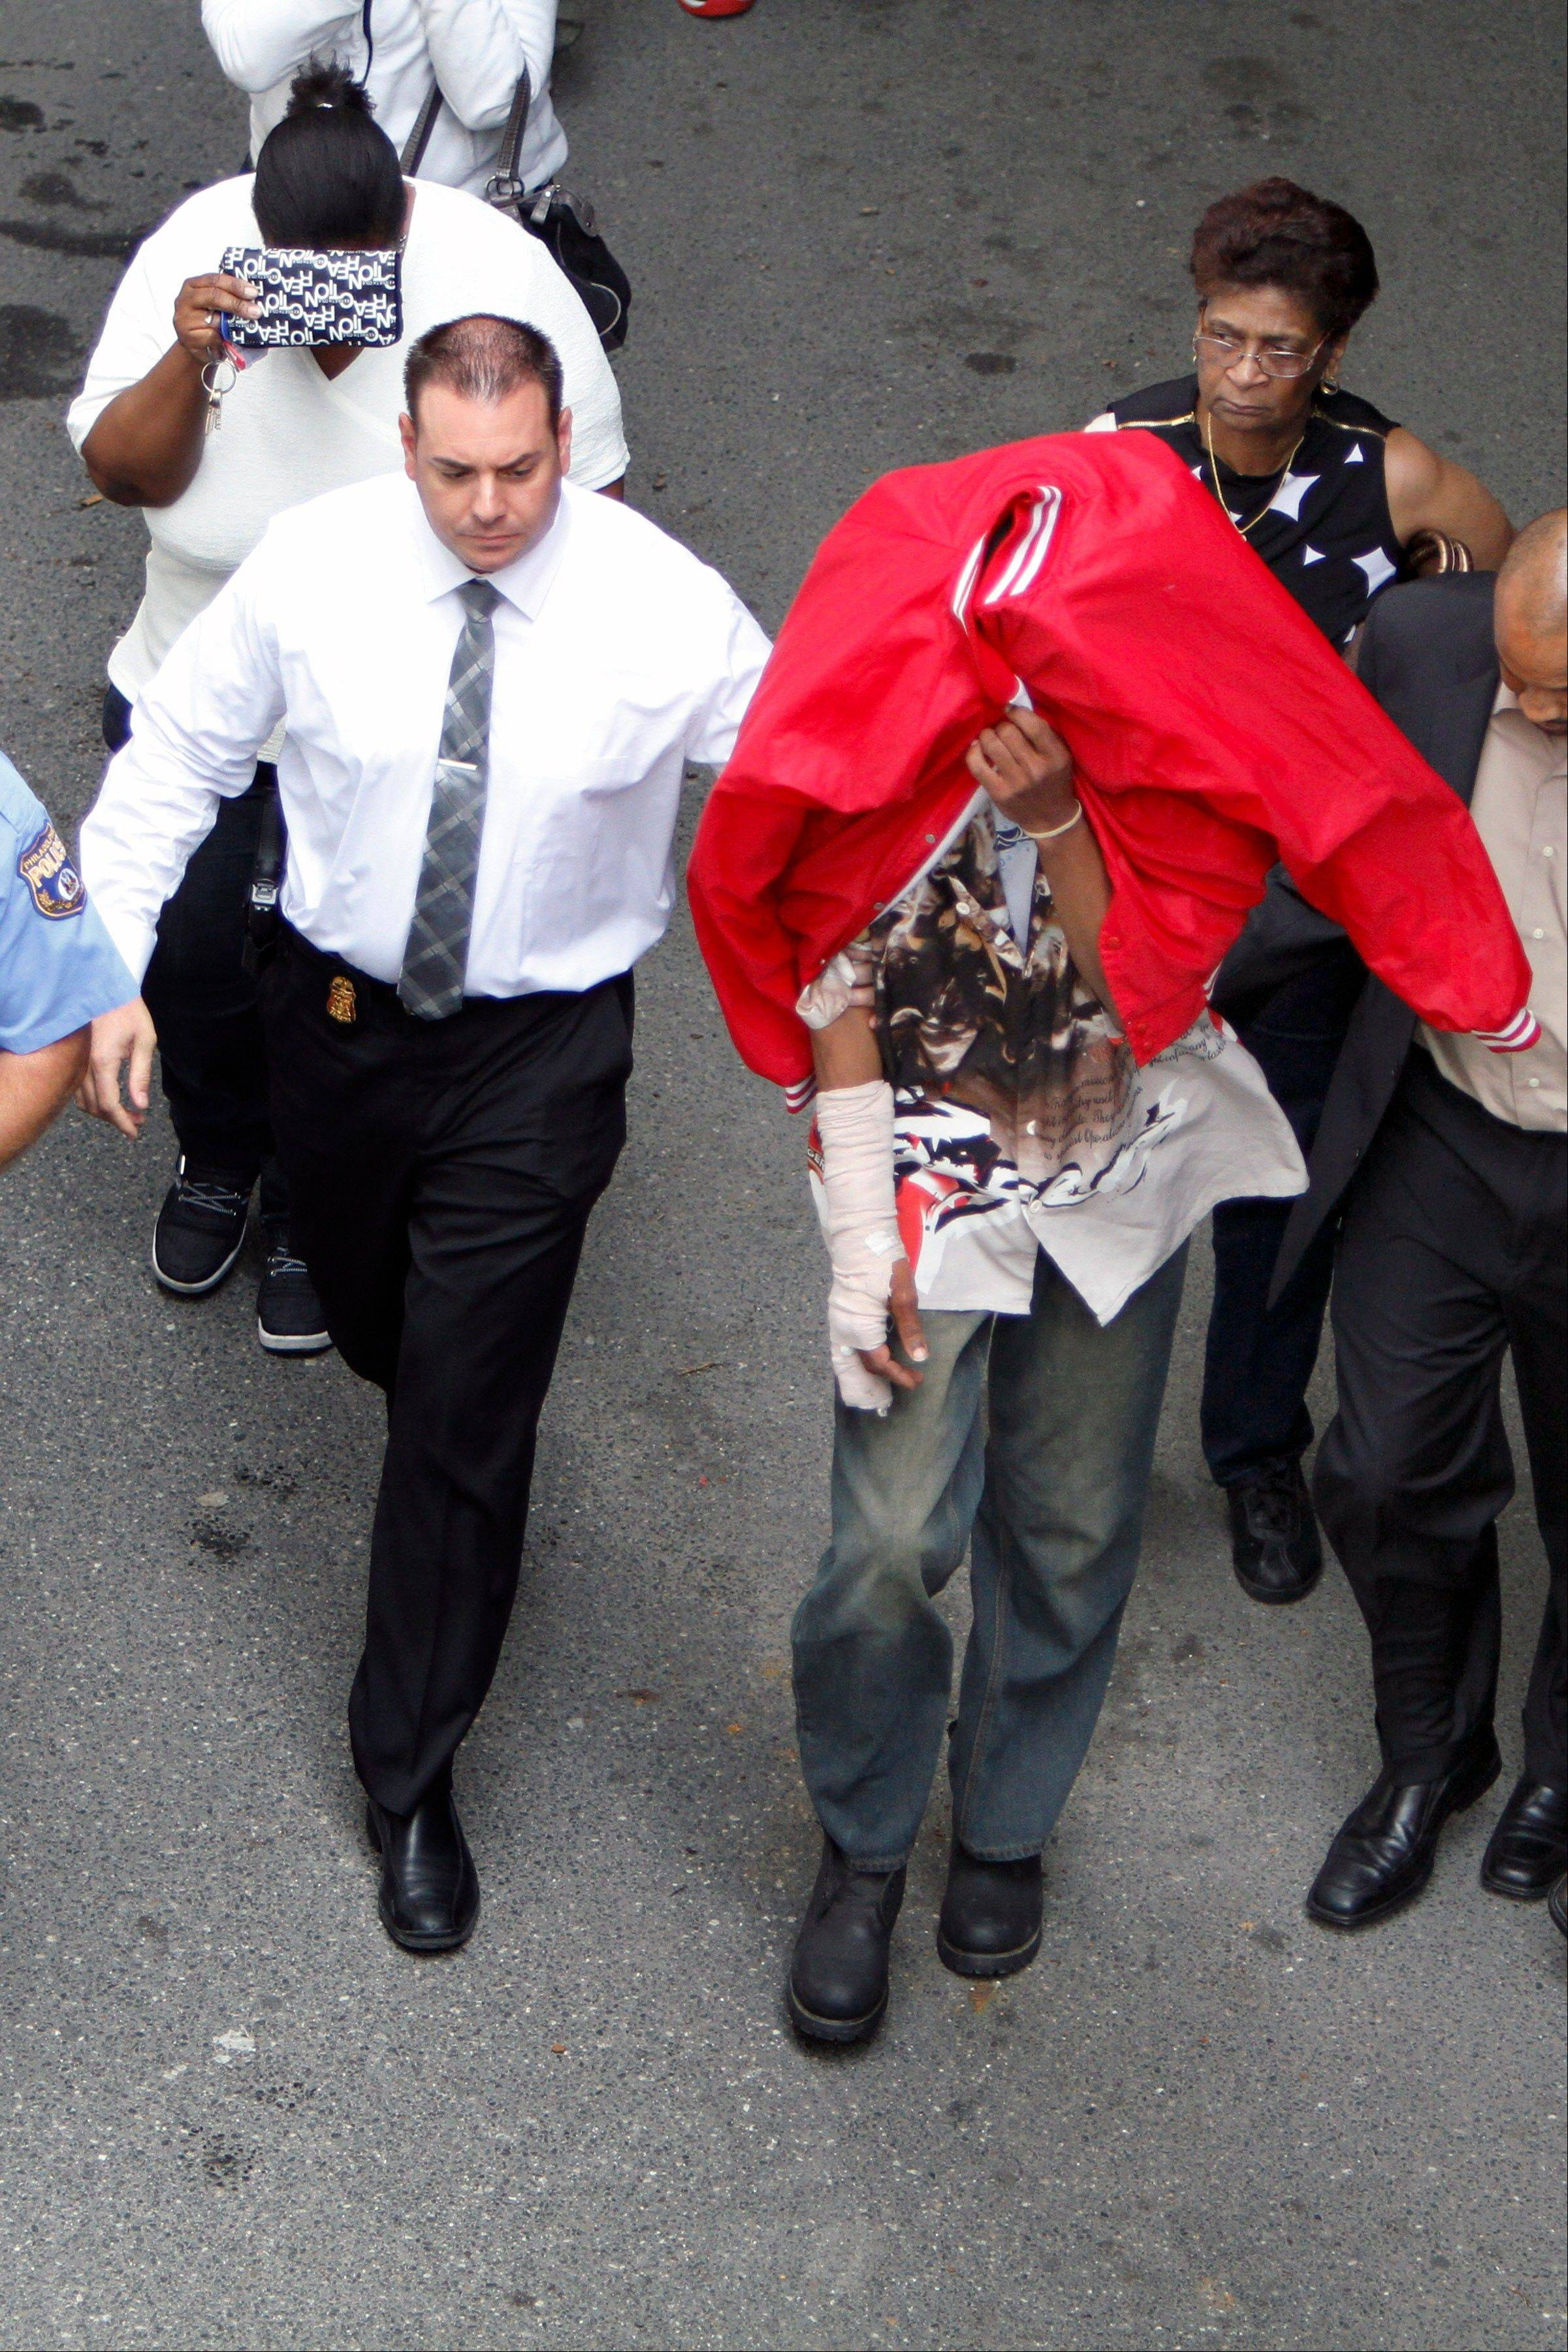 Sean Benschop, center, with red jacket over his head, walks with investigators as he arrives at the Philadelphia Police Department's Central Detectives Division Saturday in Center City Philadelphia. Benschop, the heavy equipment operator accused of being high on marijuana when a downtown building collapsed onto a thrift store, killing six people, turned himself in on Saturday to face charges in the deaths, police said.